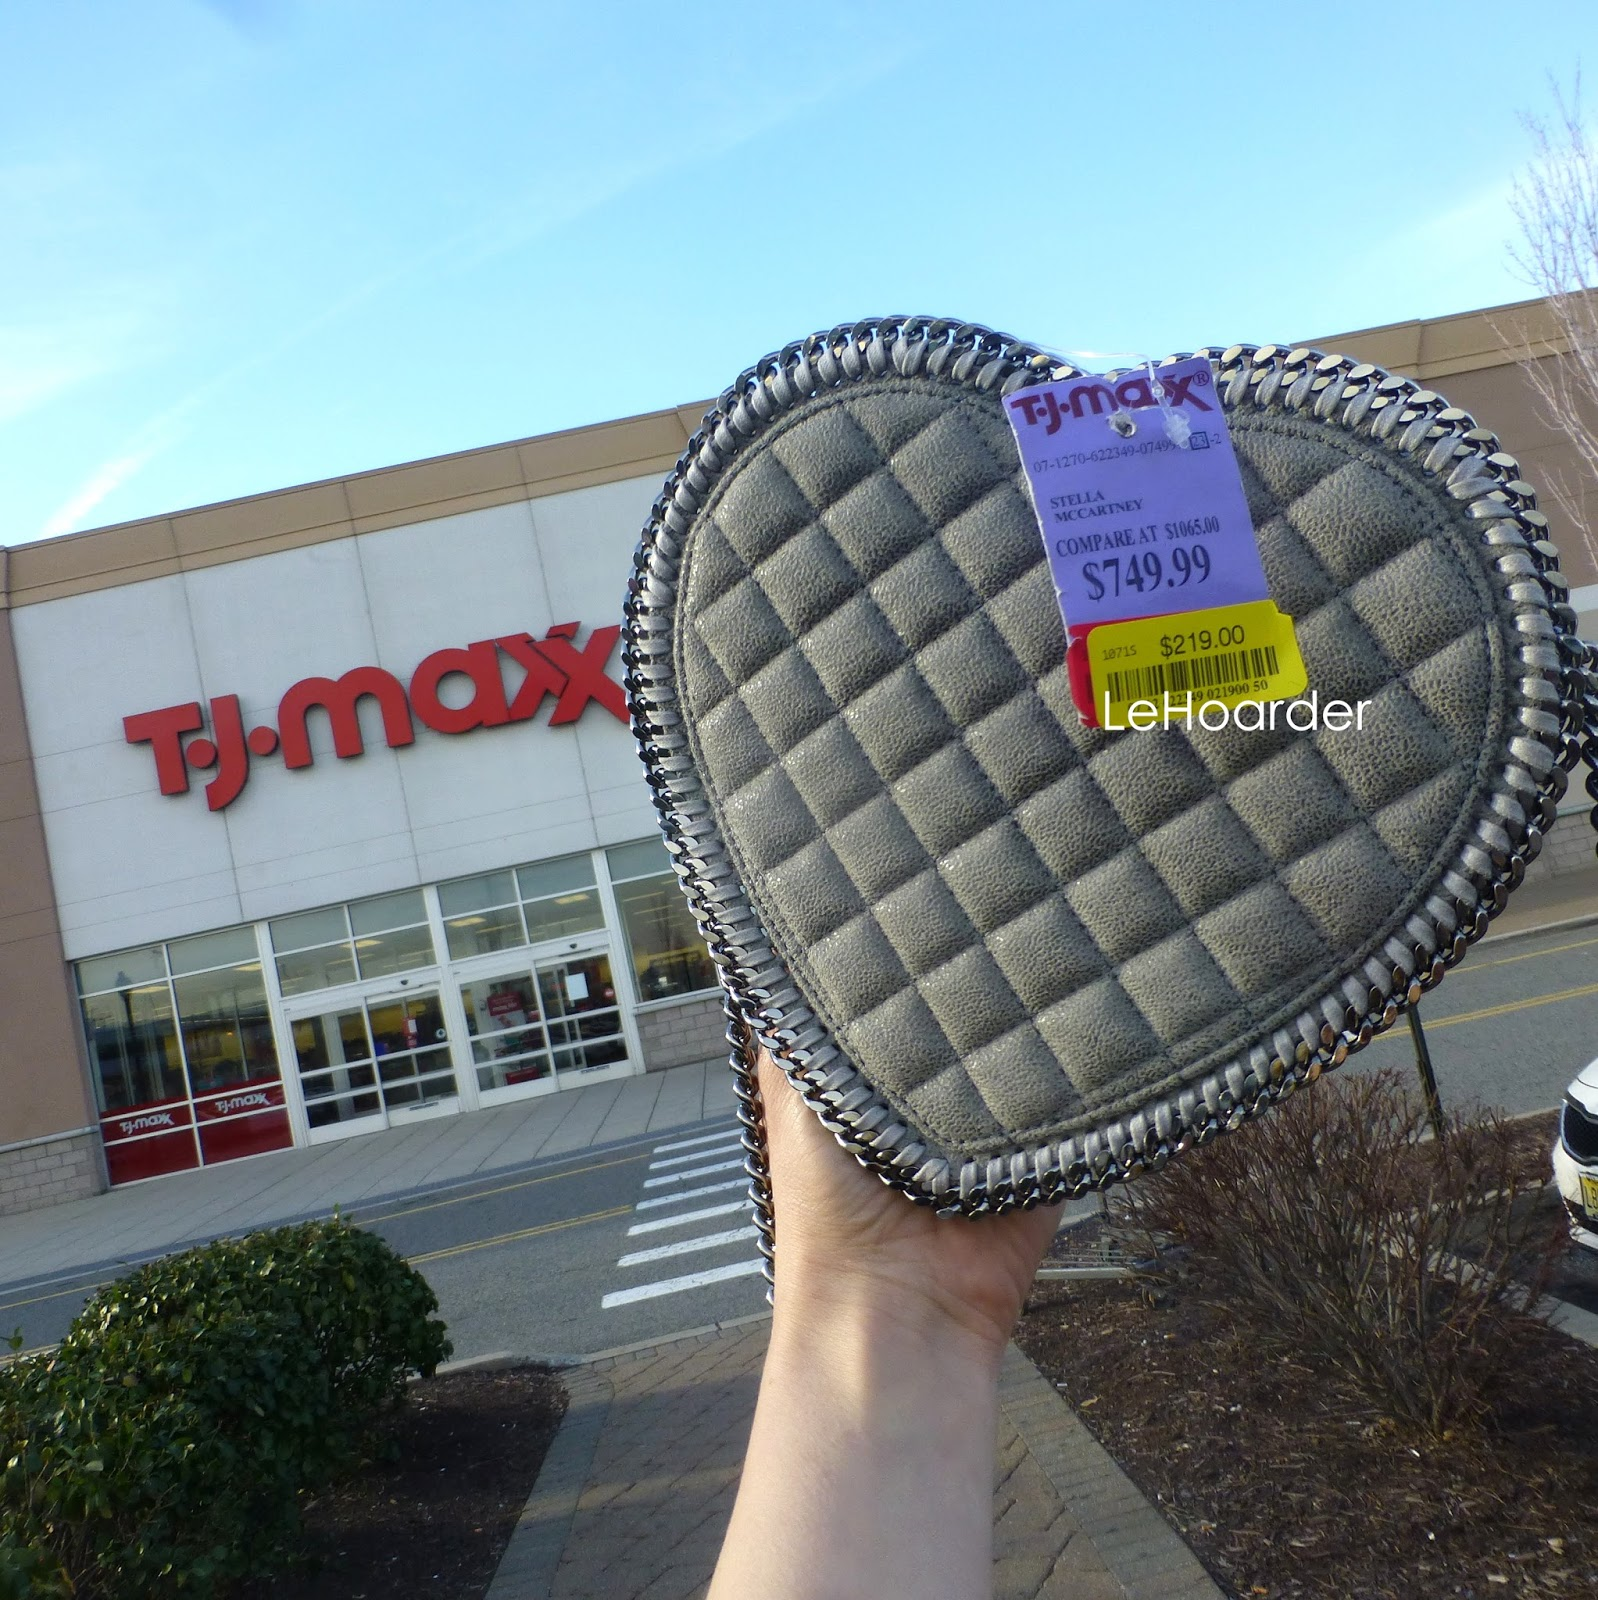 6d980aab0 It's Yellow Sticker Clearance Time at TJ Maxx & Marshalls!!! | Le ...